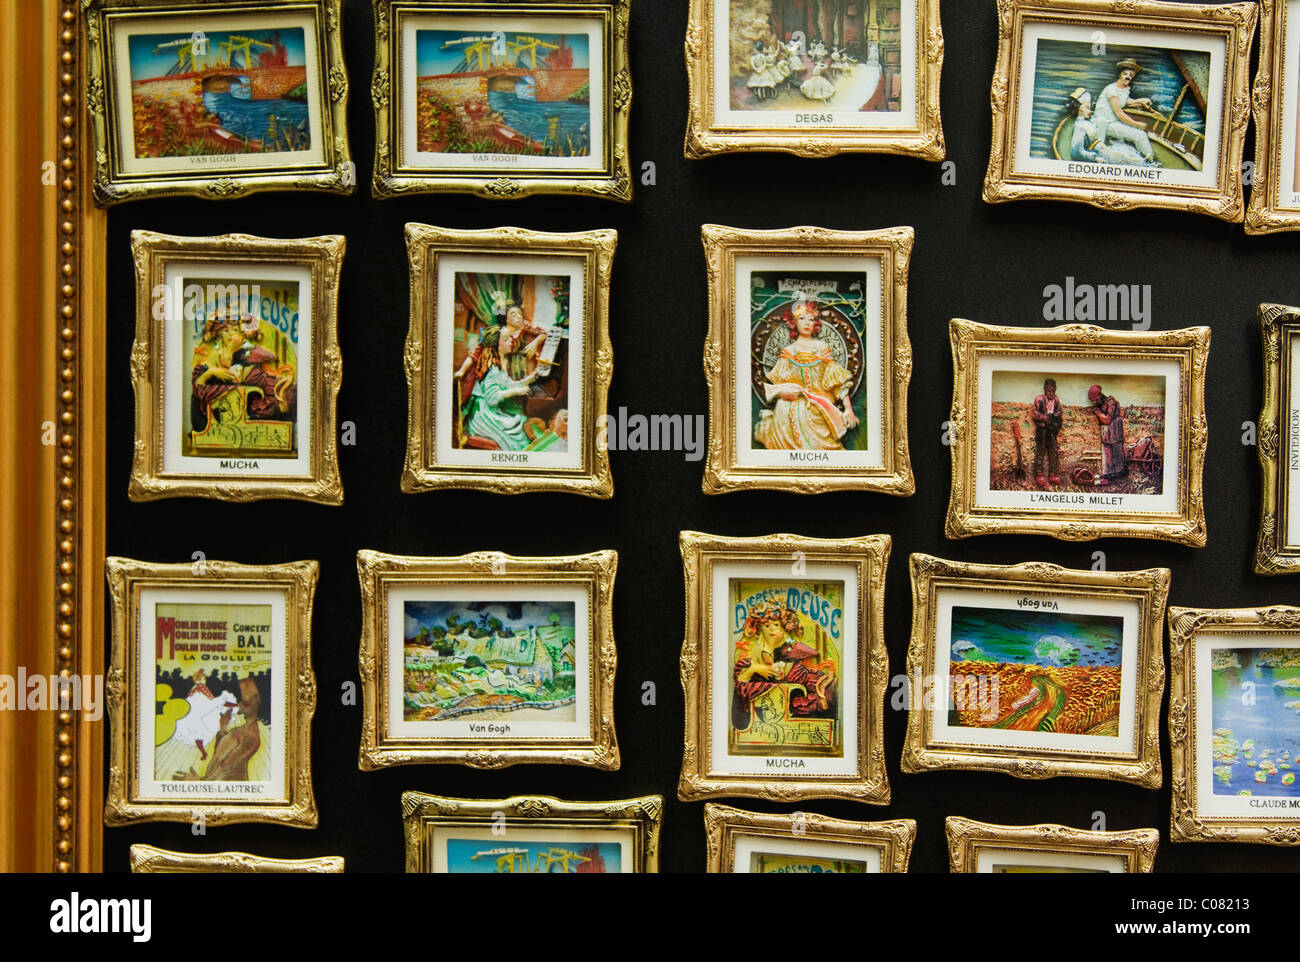 Painting Market Stockfotos & Painting Market Bilder - Alamy